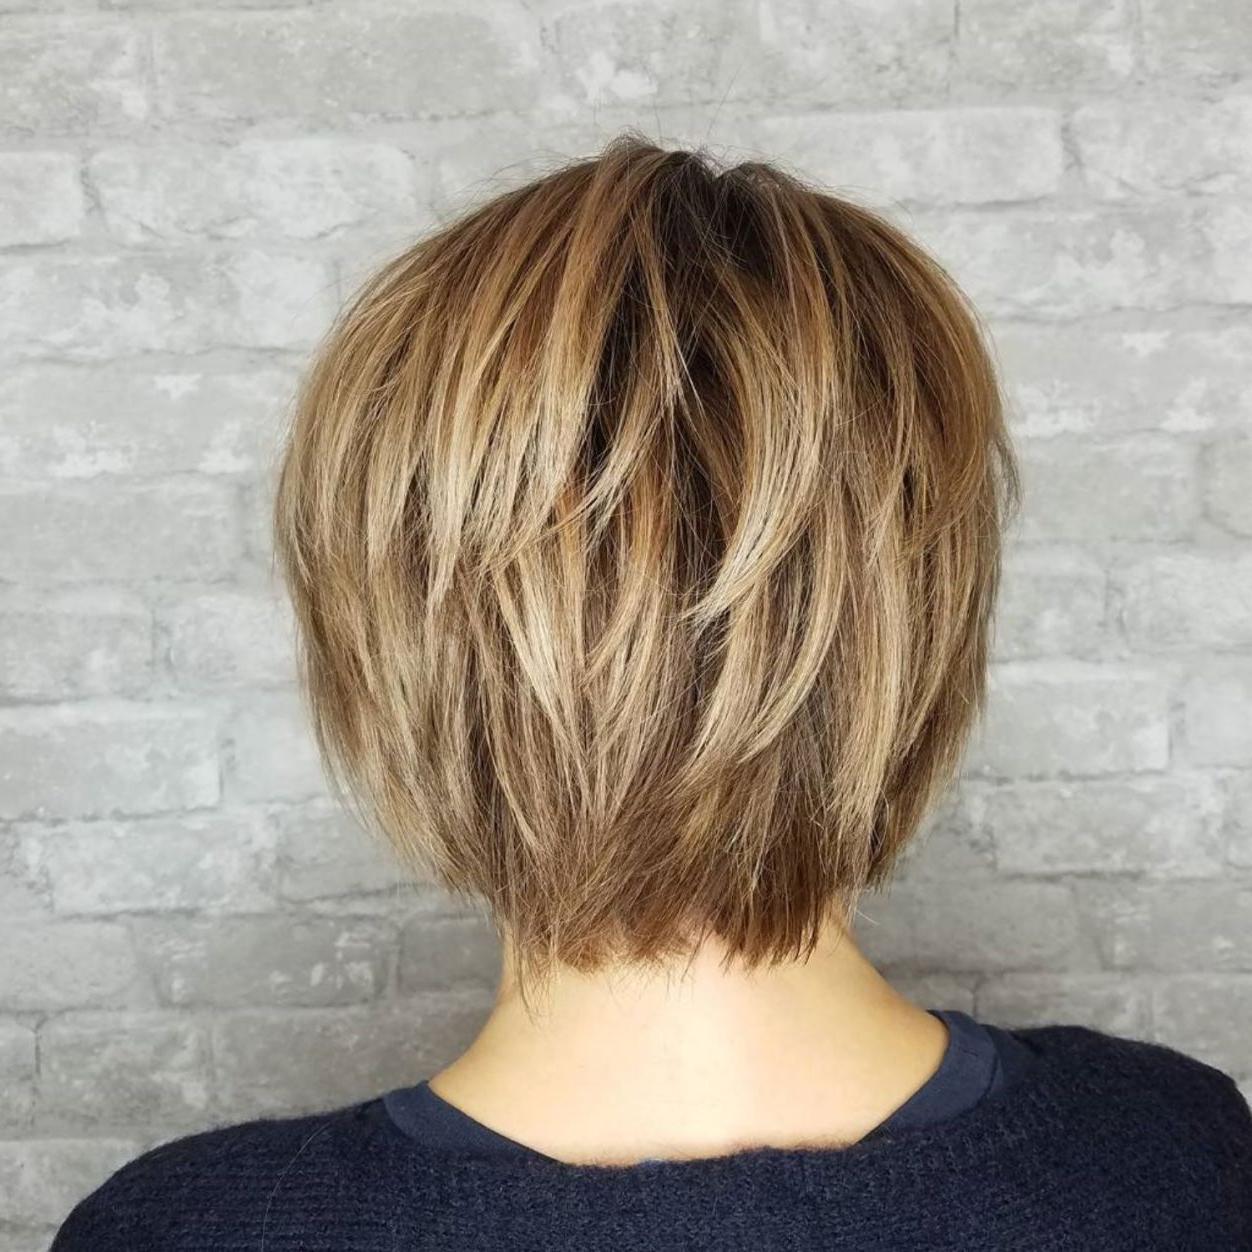 60 Short Shag Hairstyles That You Simply Can't Miss | Hair With Golden Bronde Bob Hairstyles With Piecey Layers (View 12 of 20)